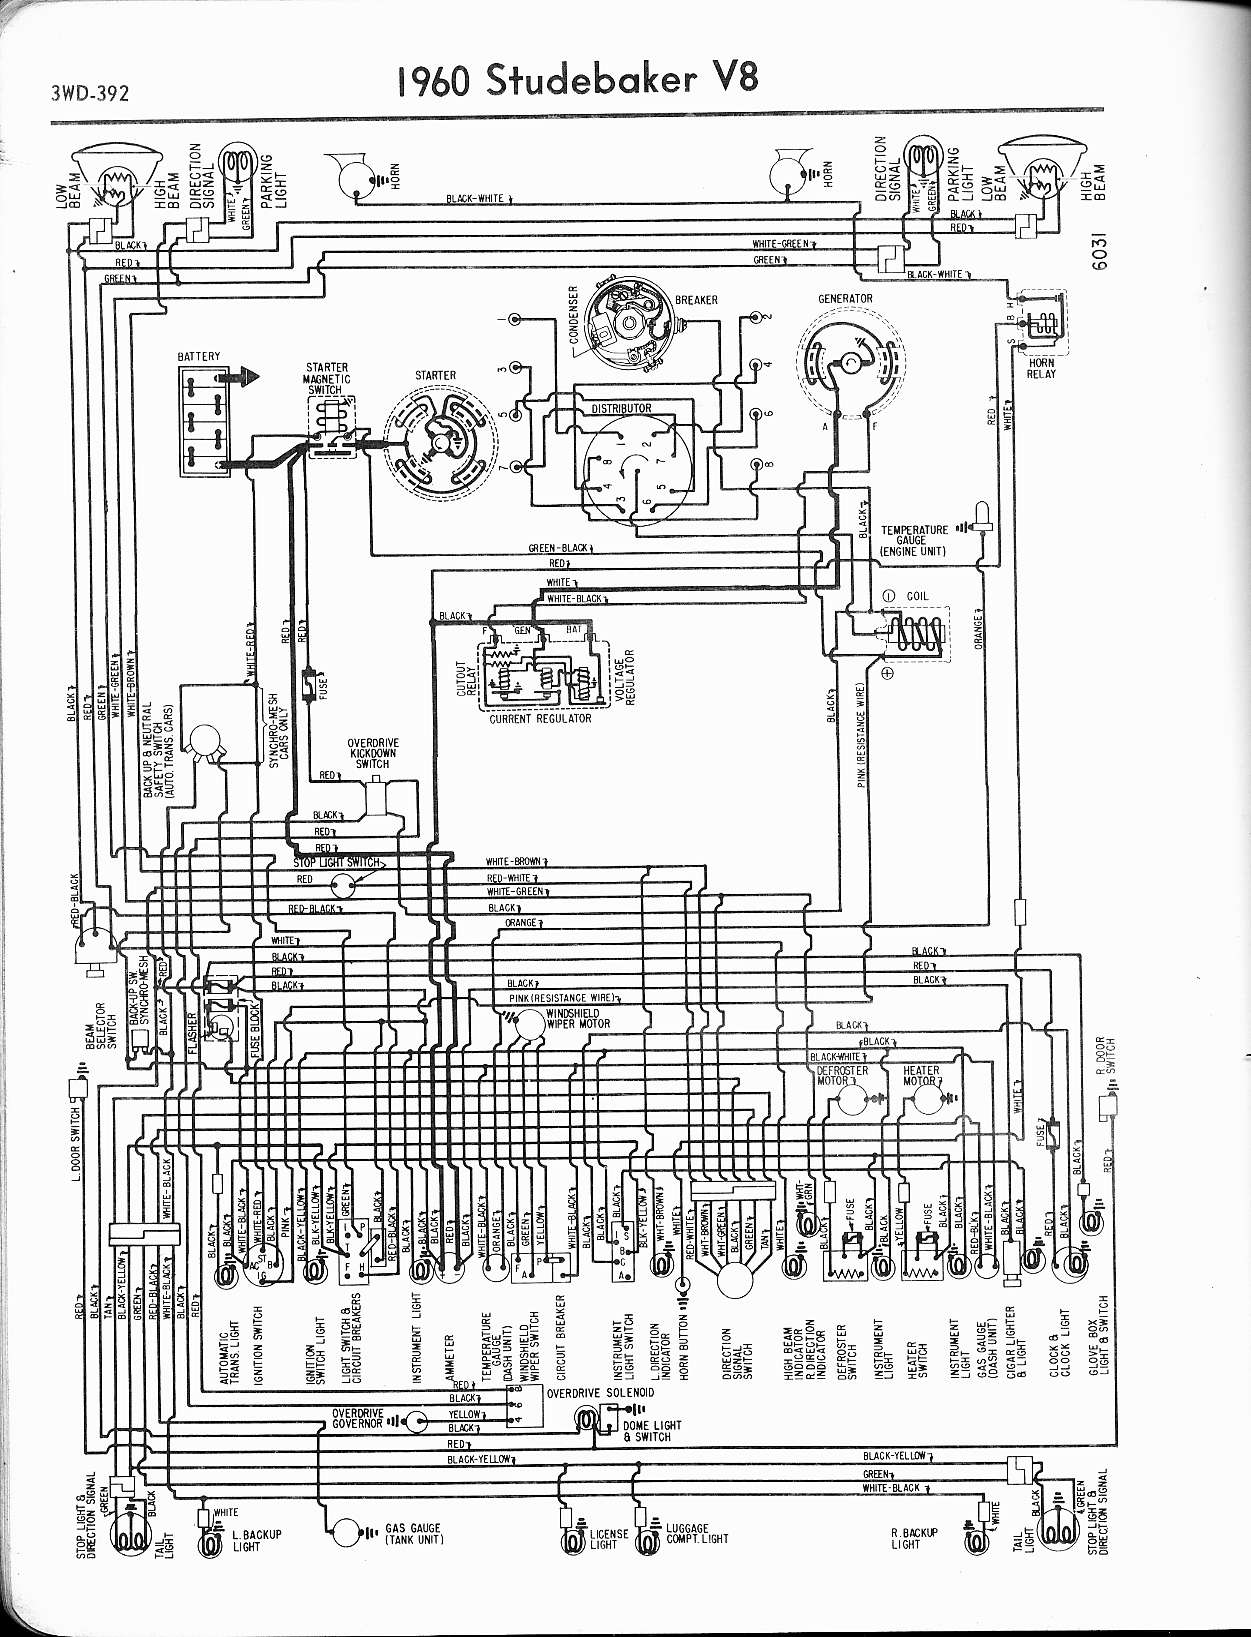 Wiring Diagram For 1960 Studebaker V8 Browse Data 1950 Chrysler Imperial Schematics Diagrams The Old Car Manual Project